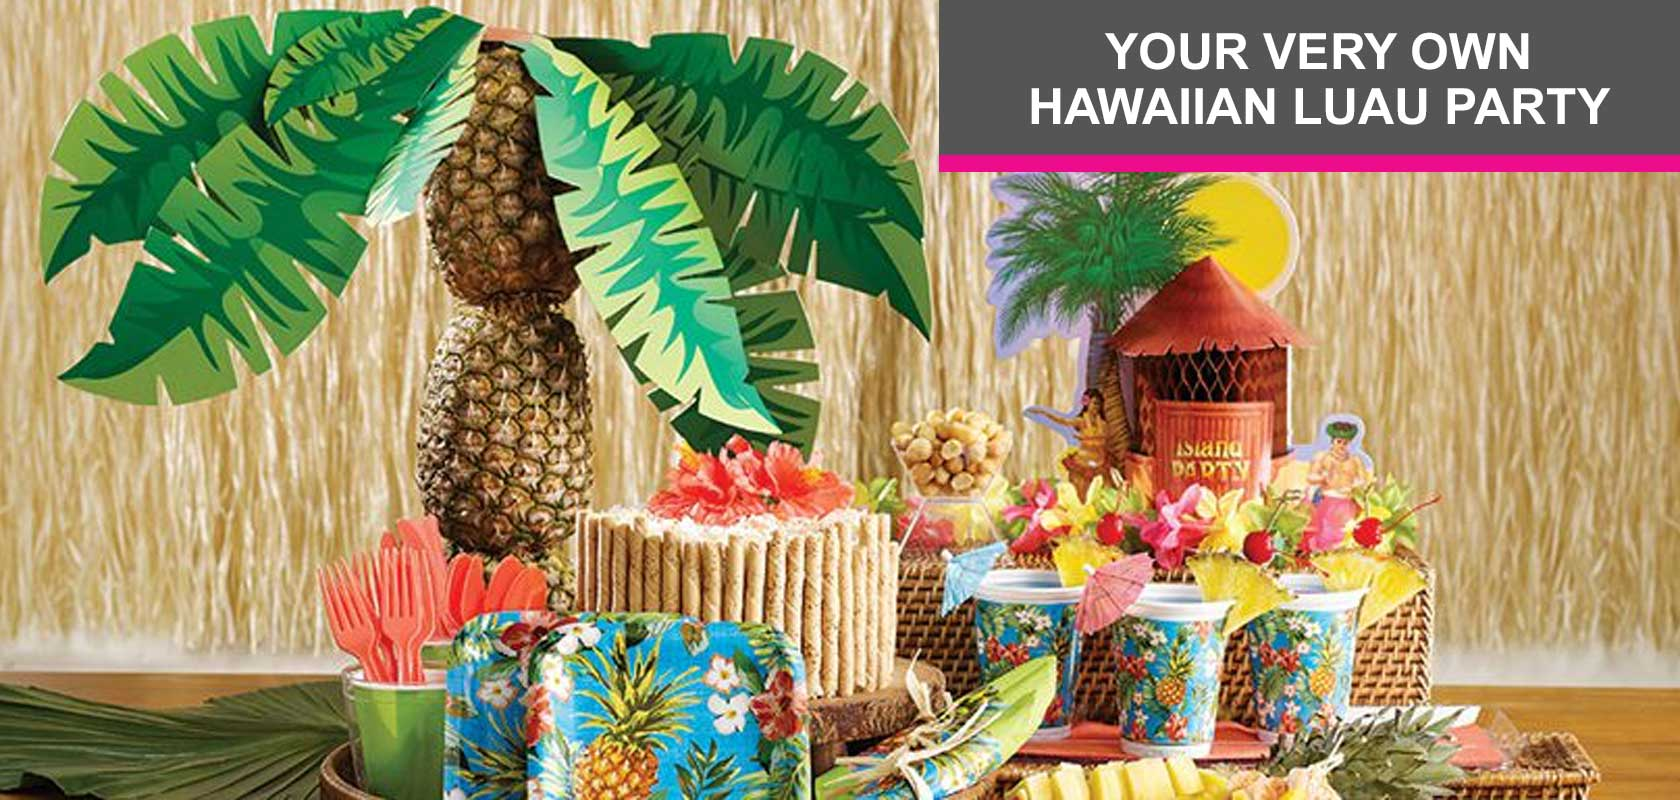 Your Very Own Hawaiian Laua Party